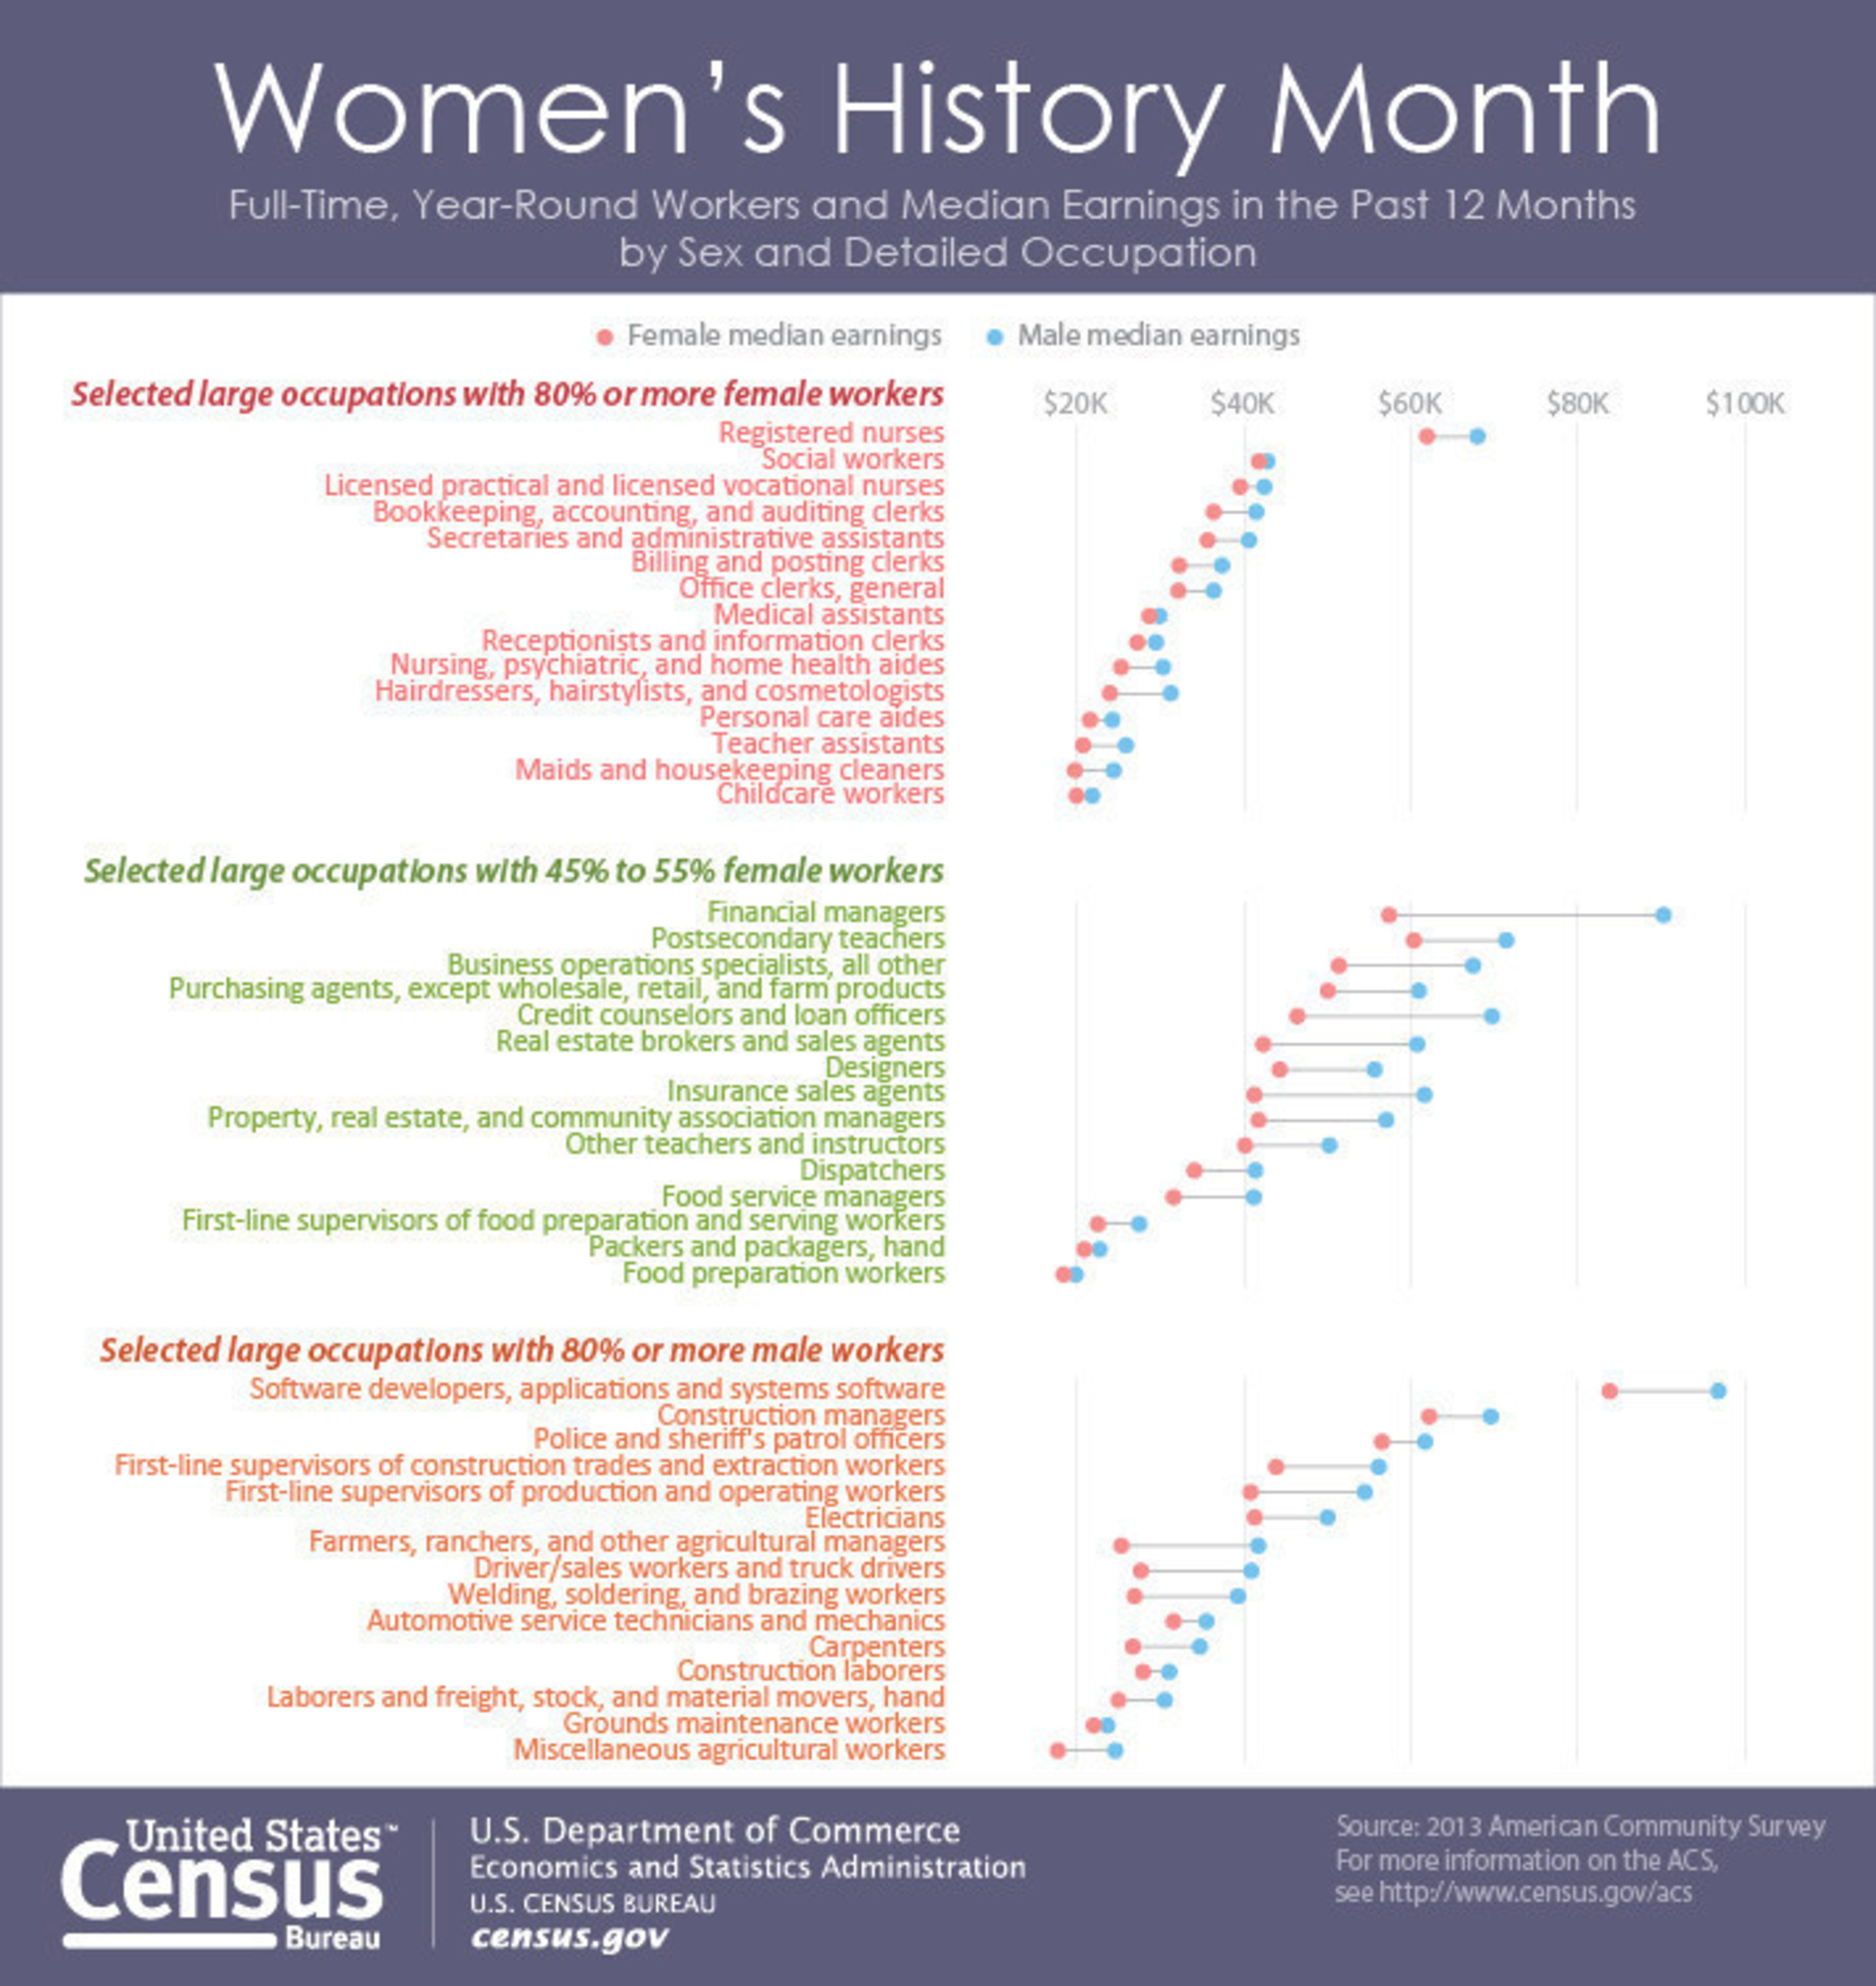 u s census bureau profile america facts for features women 39 s history month march 2015. Black Bedroom Furniture Sets. Home Design Ideas